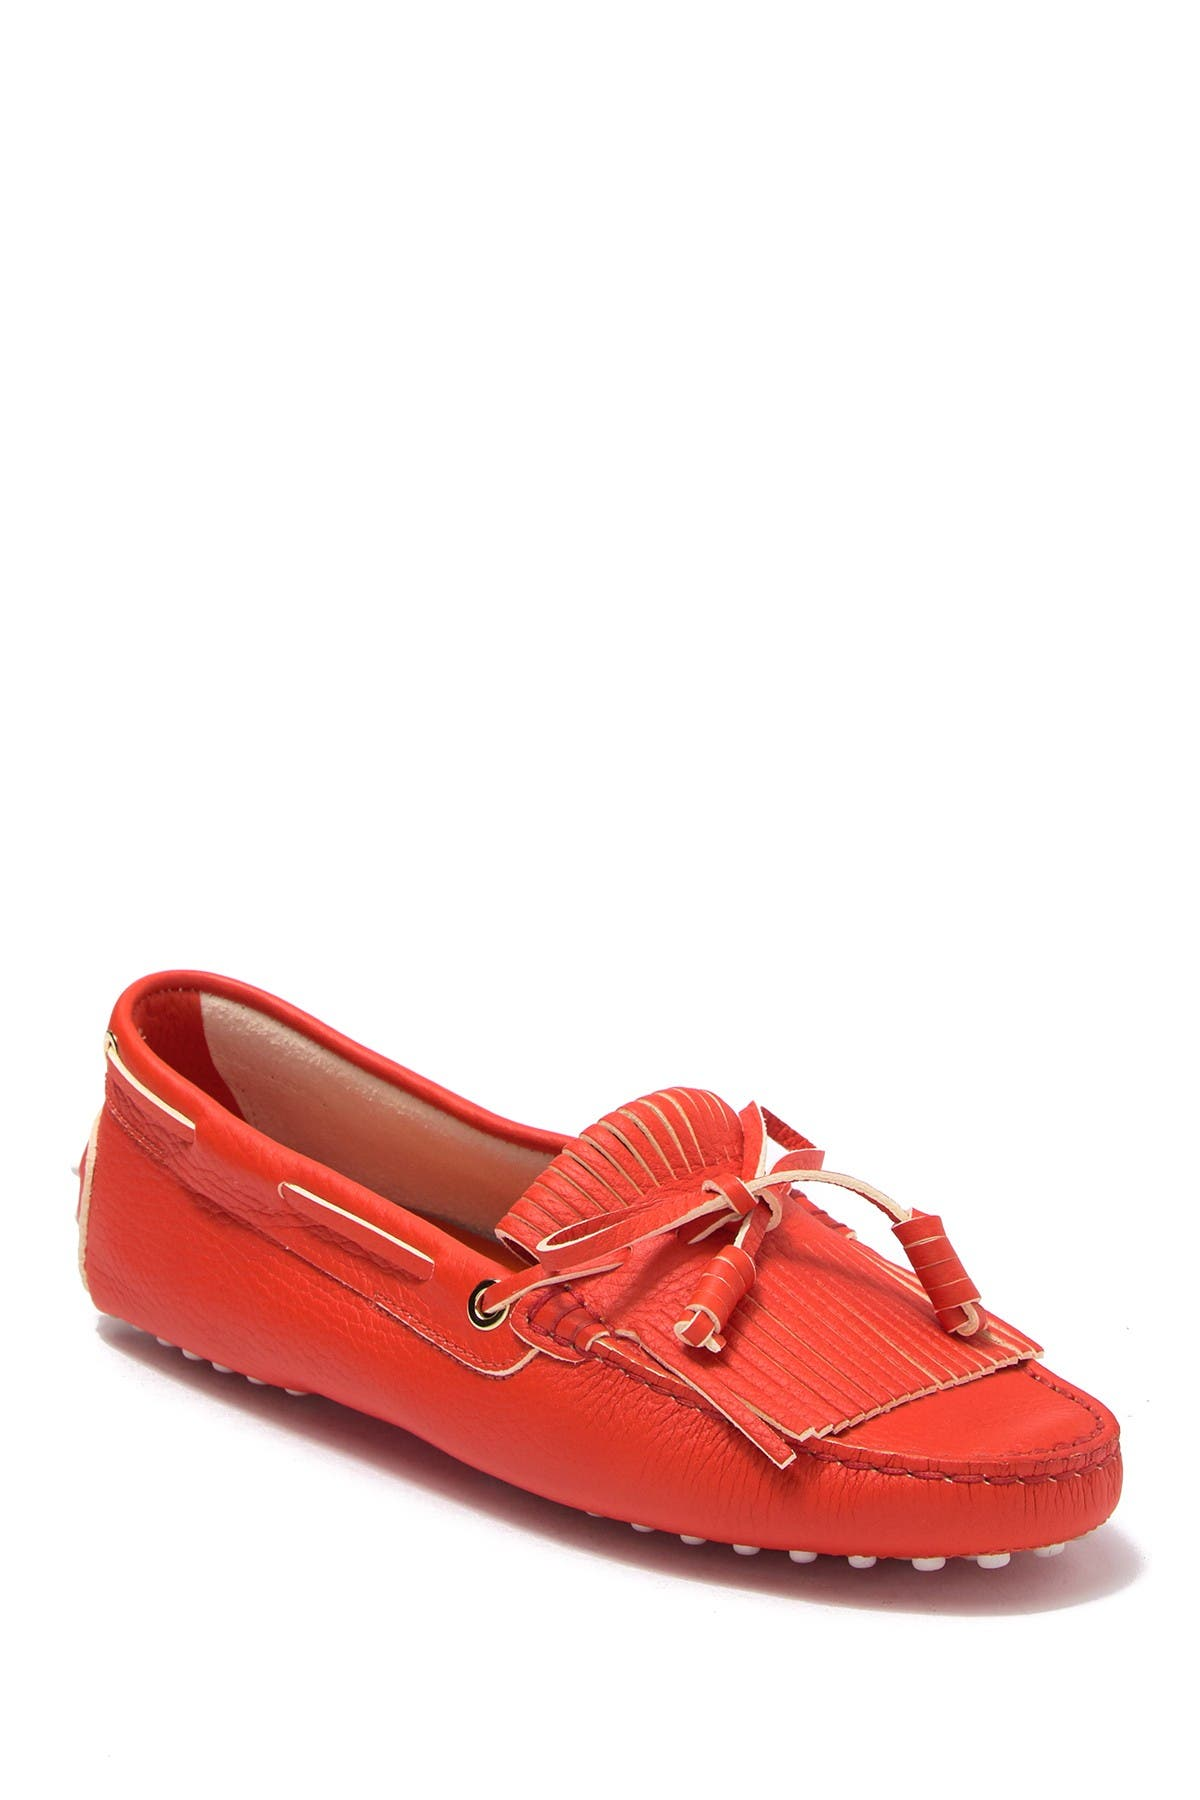 Image of Tod's Gommini Fringed Leather Driving Moccasin